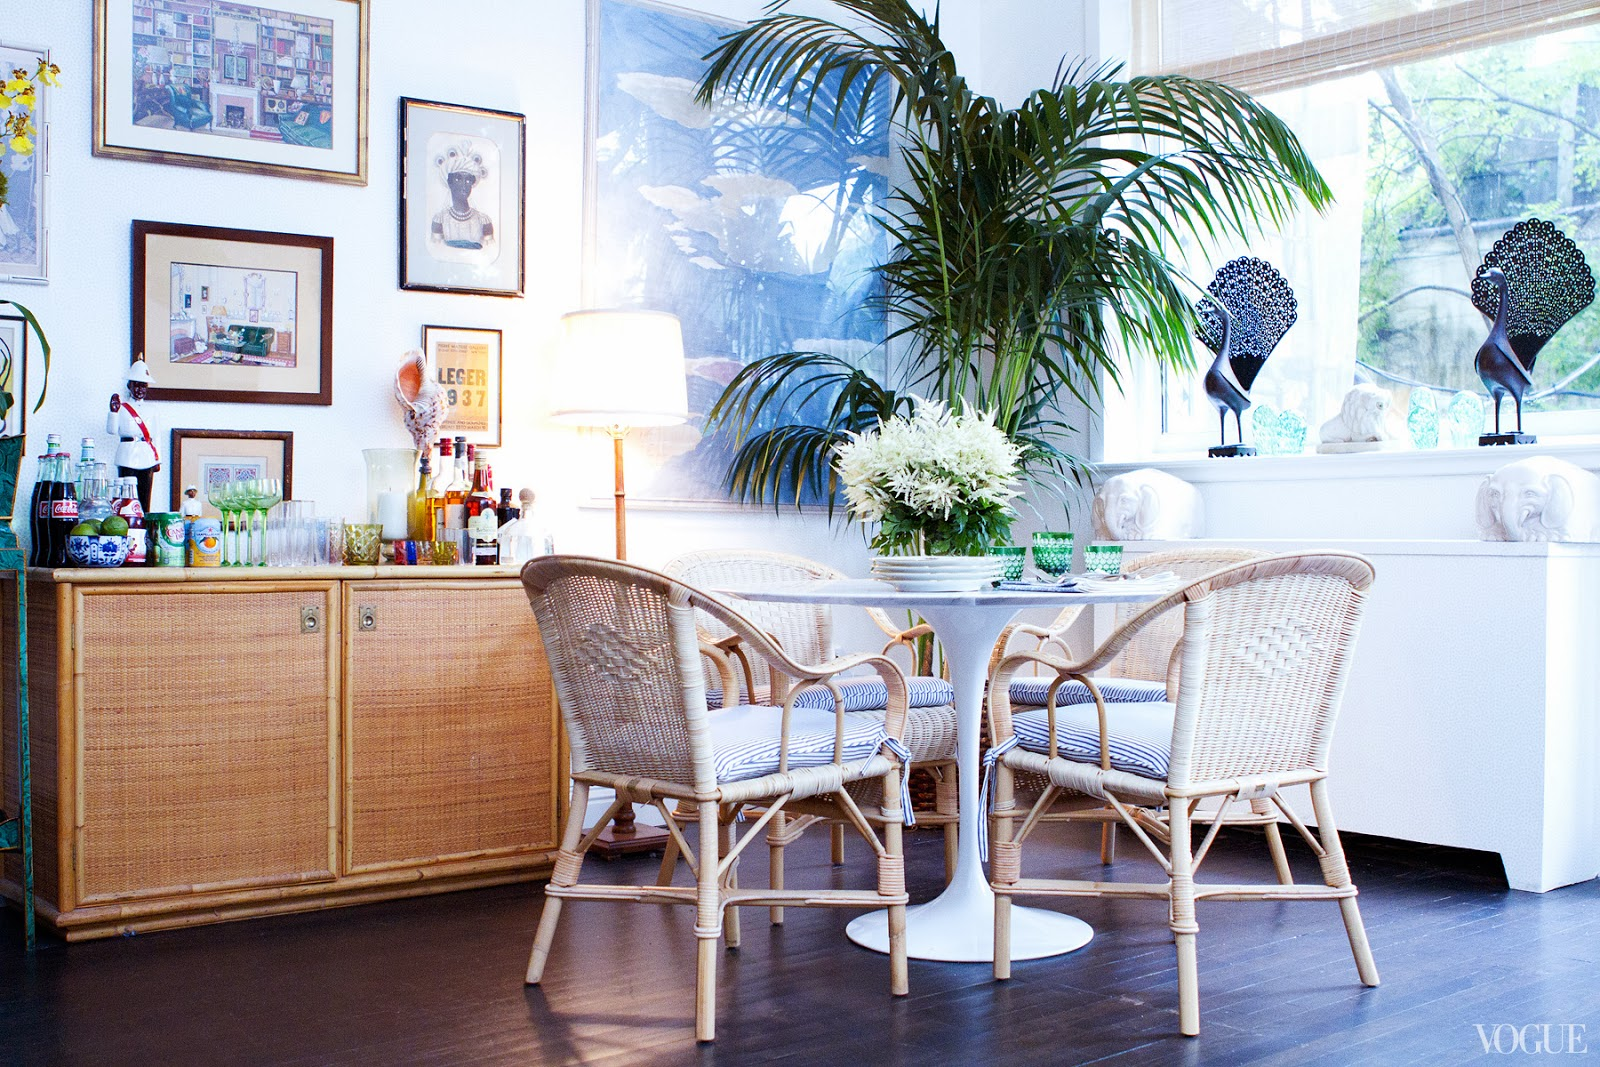 Rebecca De Ravenels Dining Room After Being Redecorated With A Saarinen Tulip Table Rattan Chairs